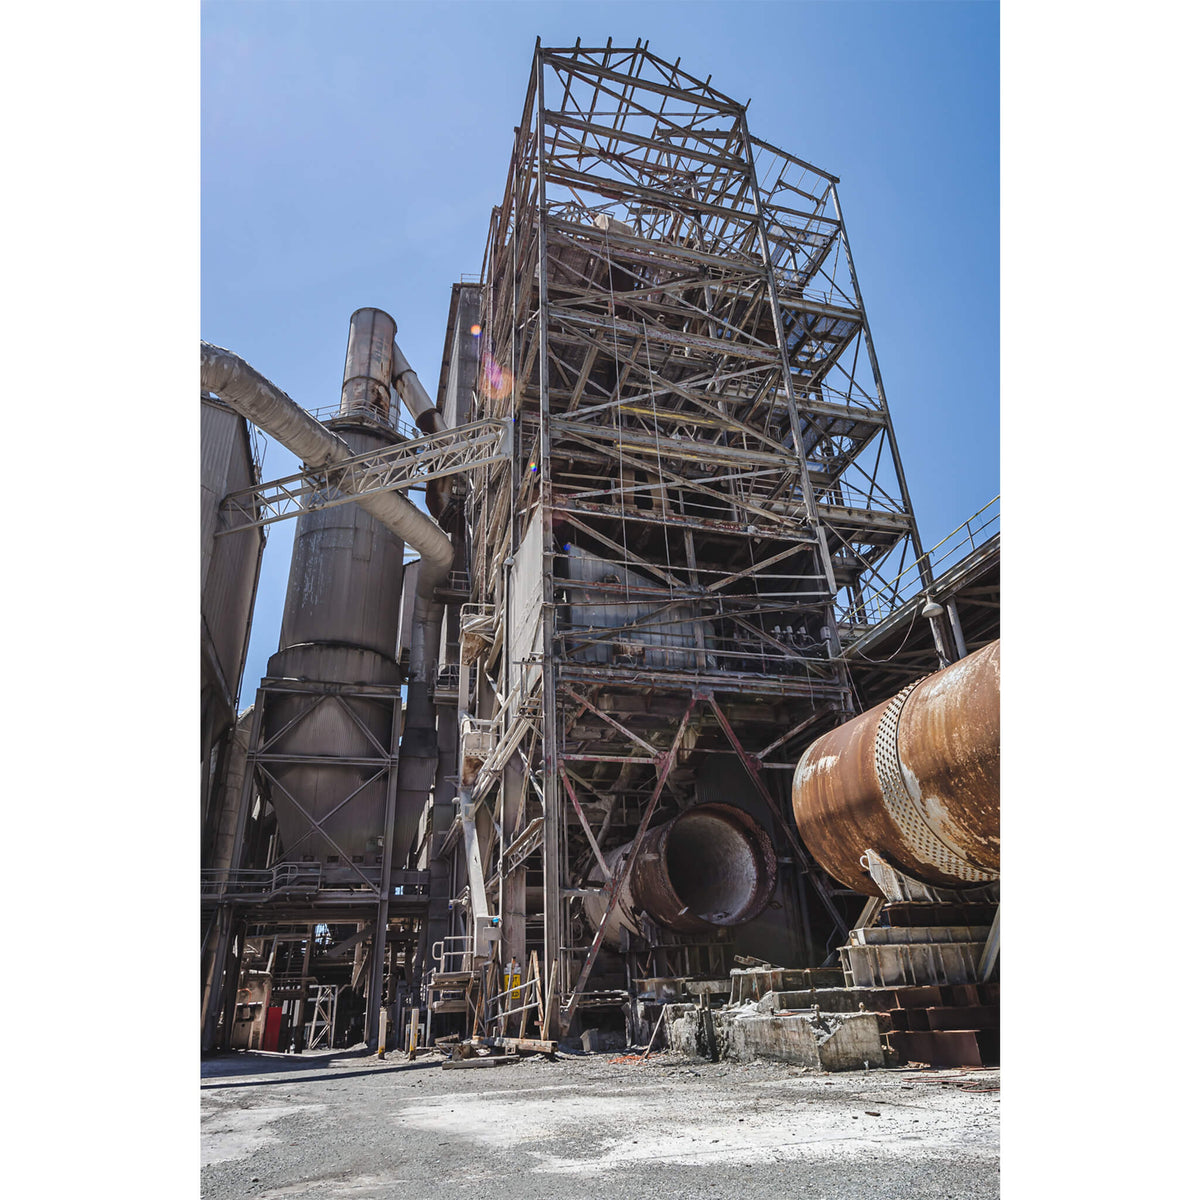 Preheater Building | Kandos Cement Works